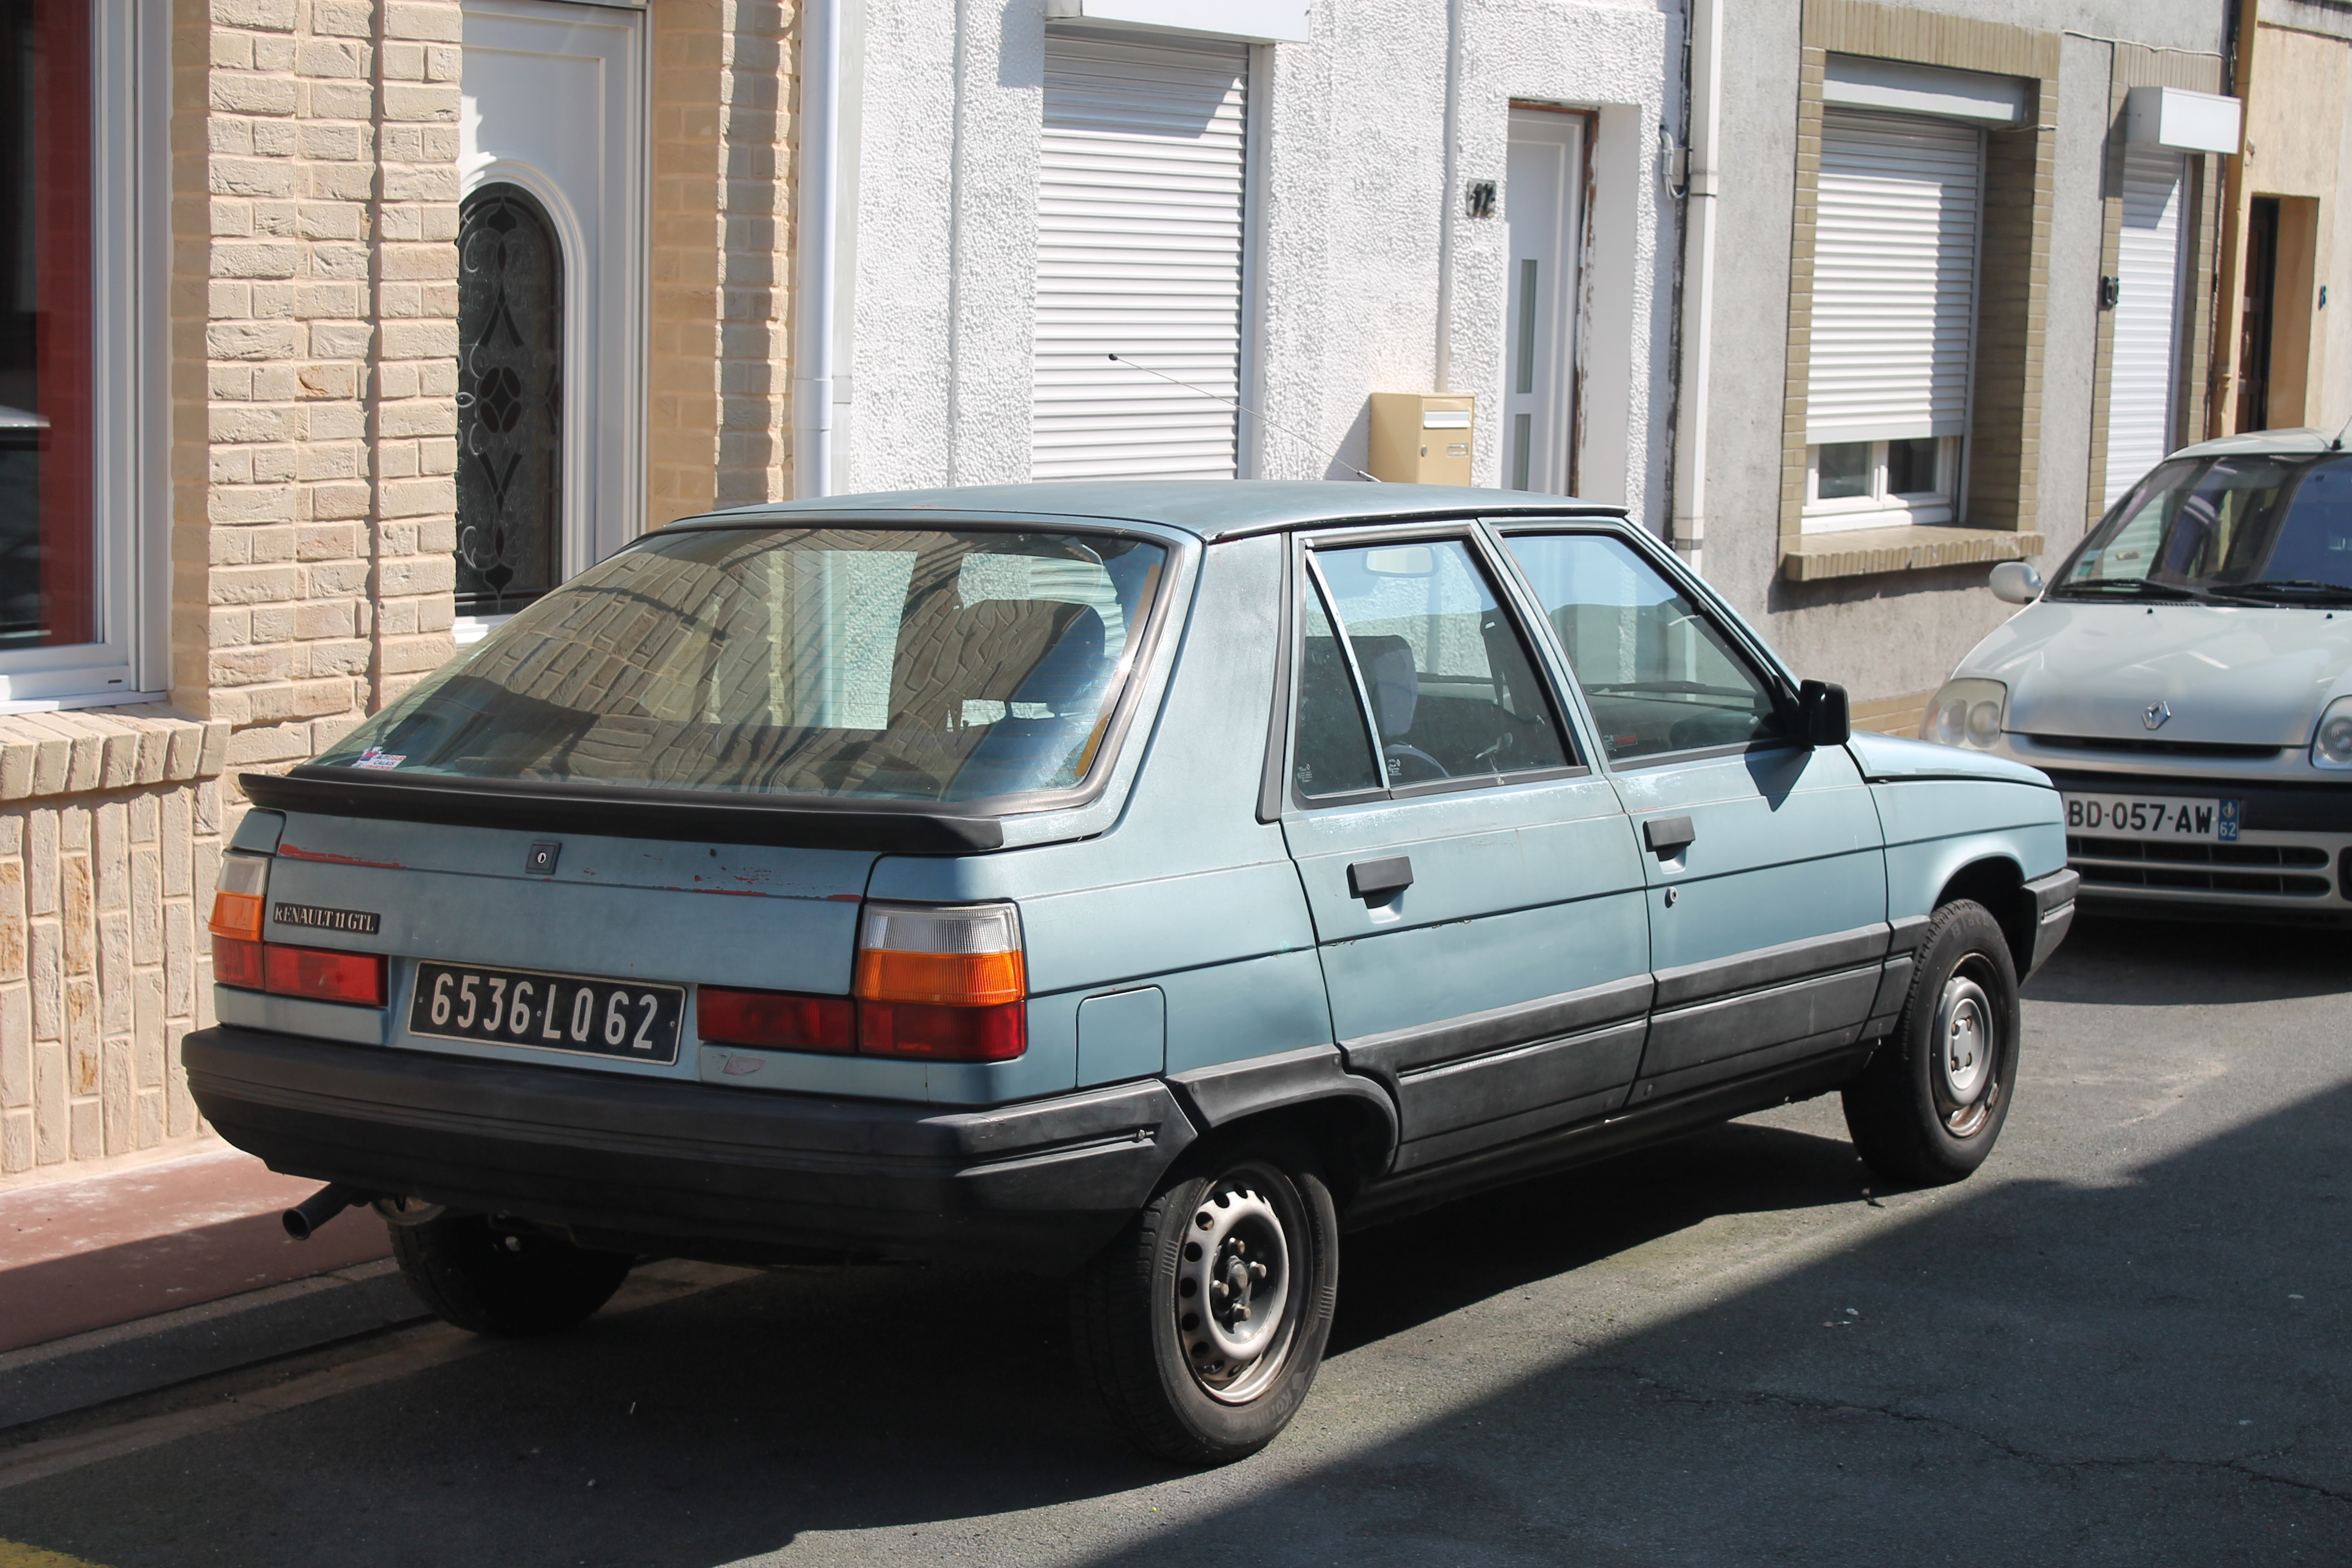 T5660 201 Aston Martin Suv in addition File 1984 Renault 11 GTL  15225597349 further File Clio III sport besides 3 further File 1993 Renault Clio Baccara 1 8i 3dr. on renault clio 1 2